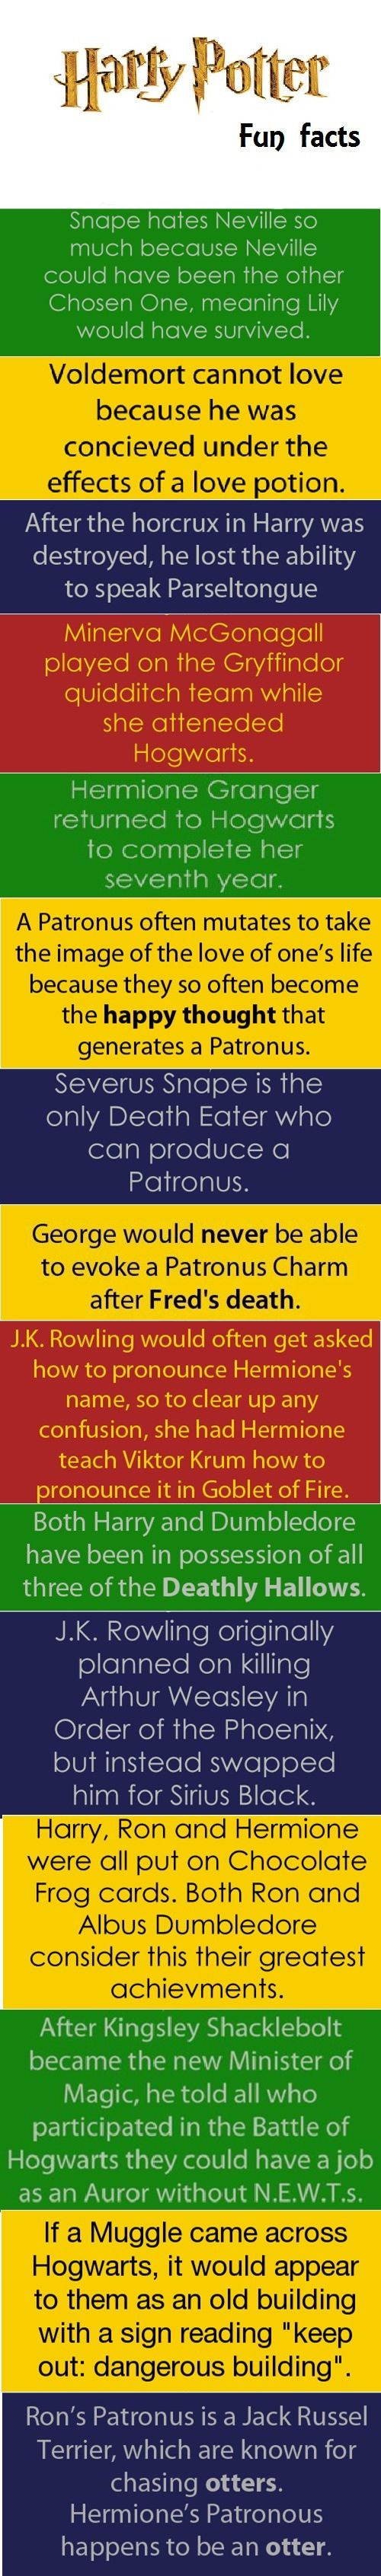 Harry Potter Fun Facts. That last one. . . .ohhh Hermione and Ron!! So jelly!